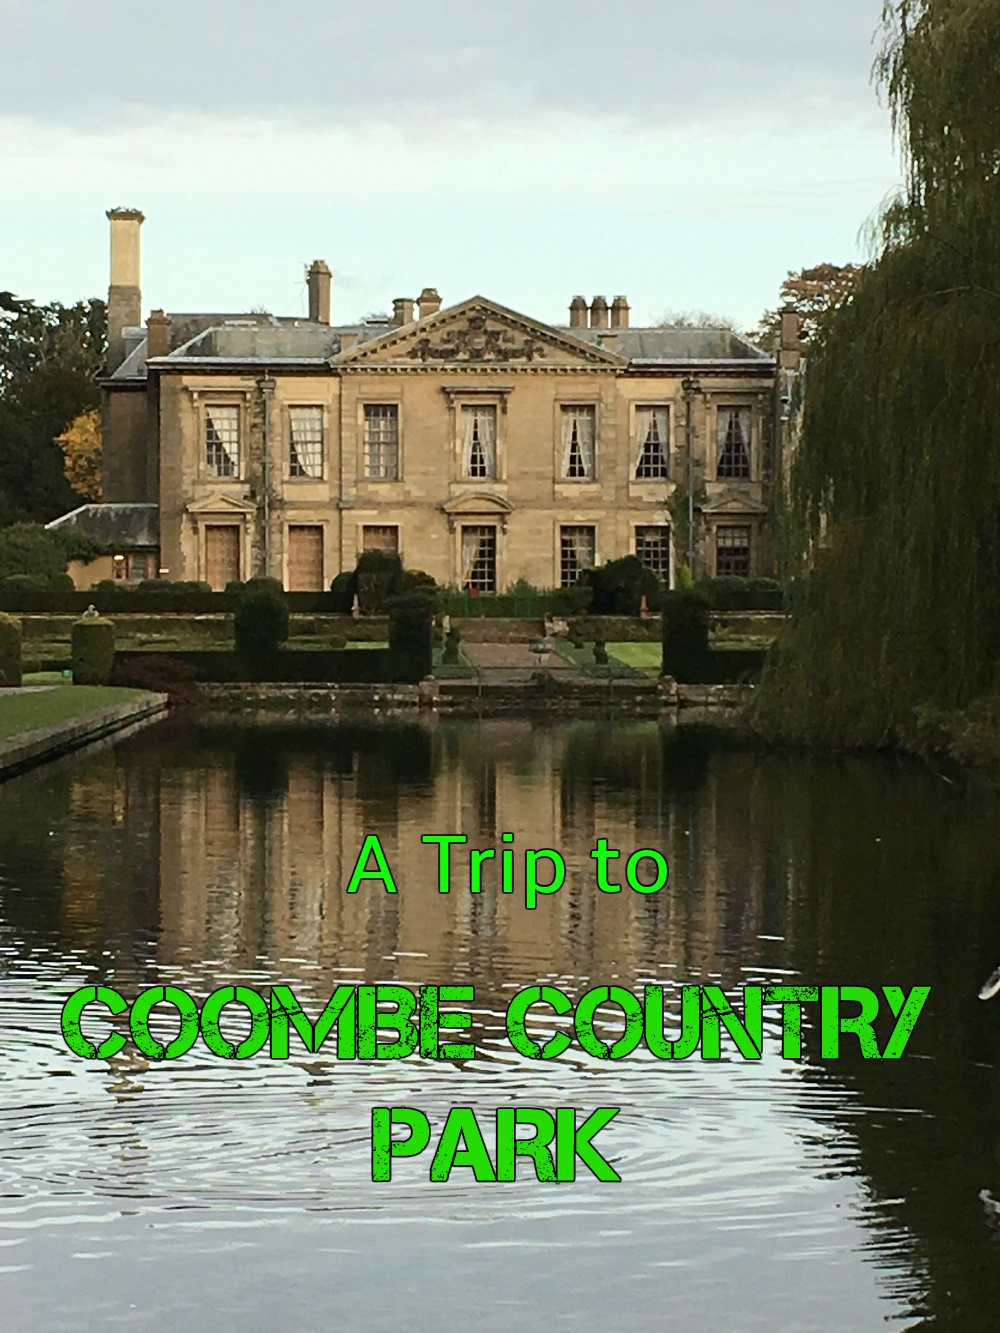 Coombe Country Park